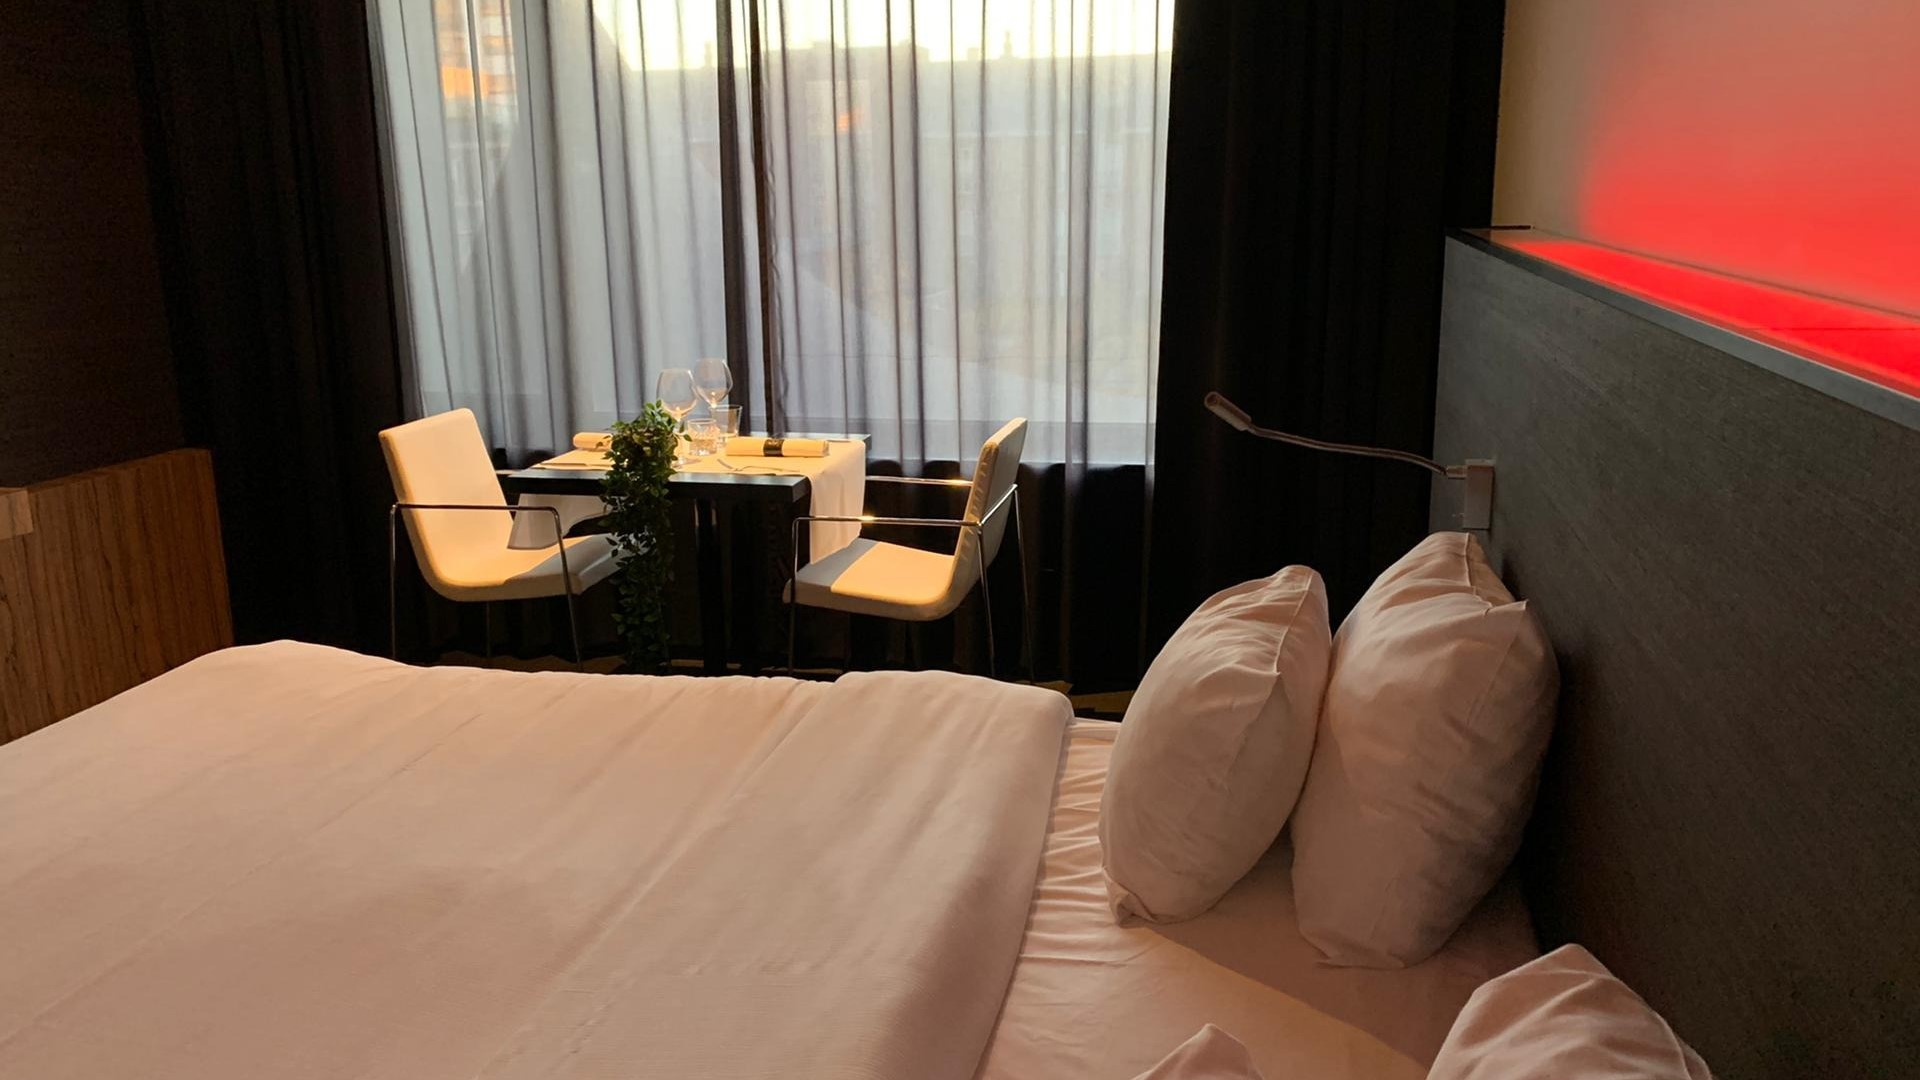 Carbon Hotel - In Room Dining Experience